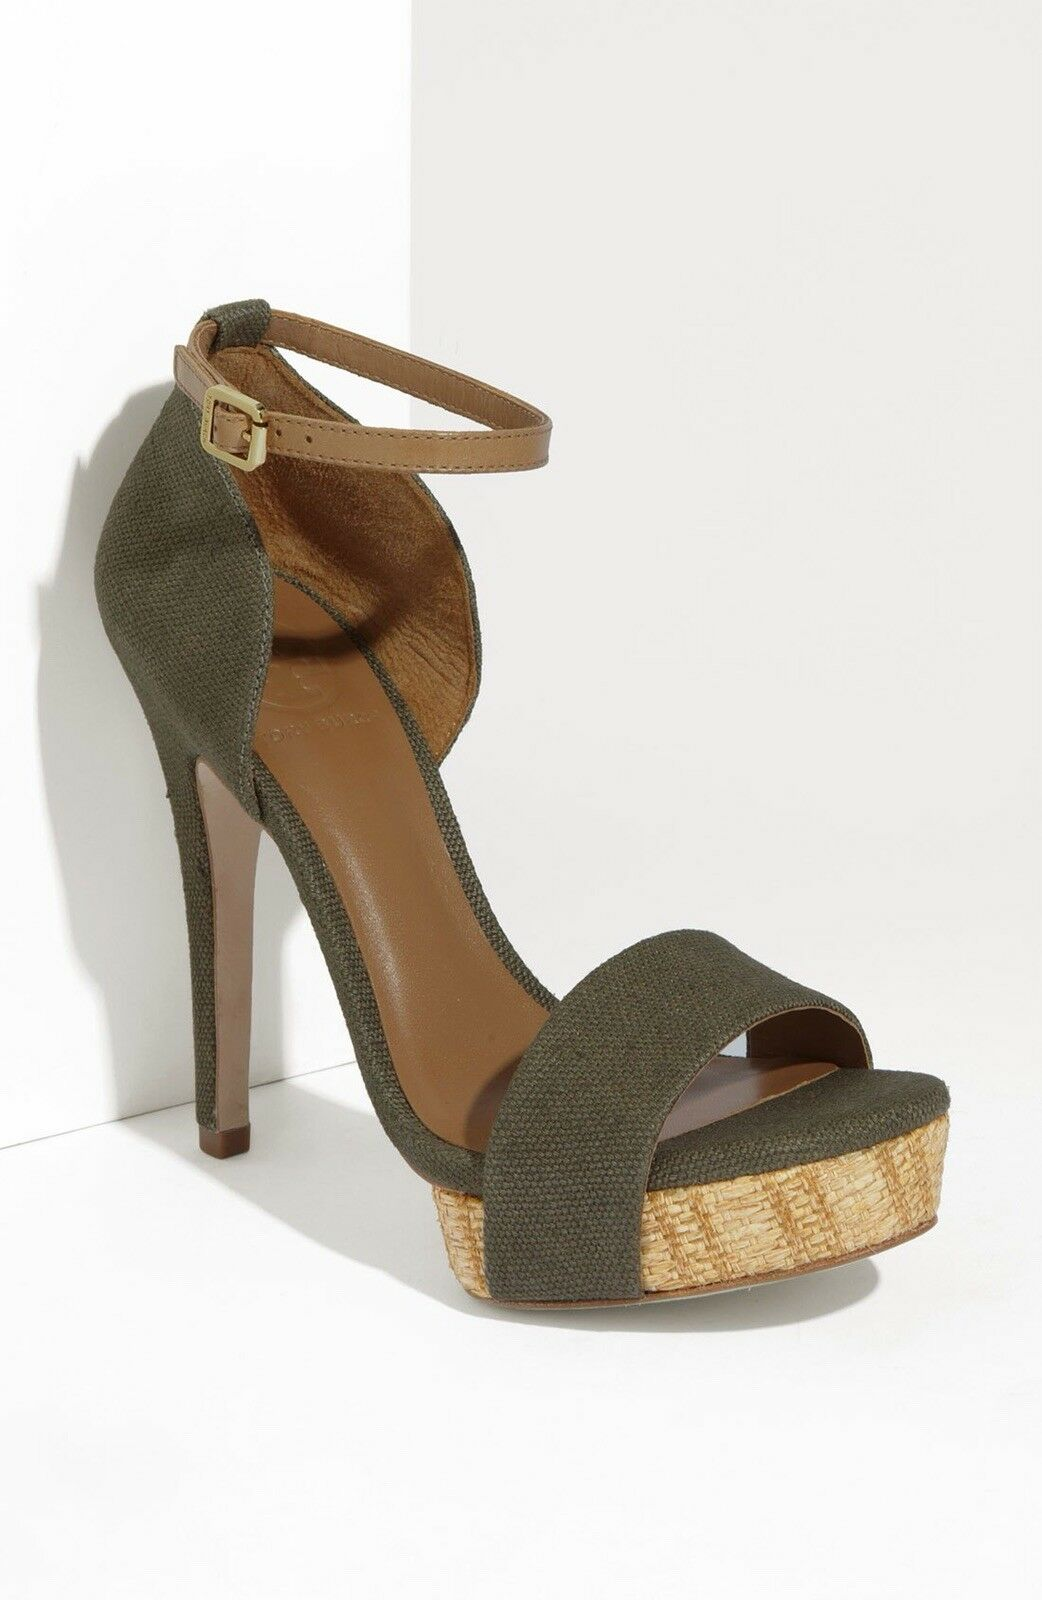 Tory Burch Amina High Heel Sandals In Olive Größe US 7 With Box